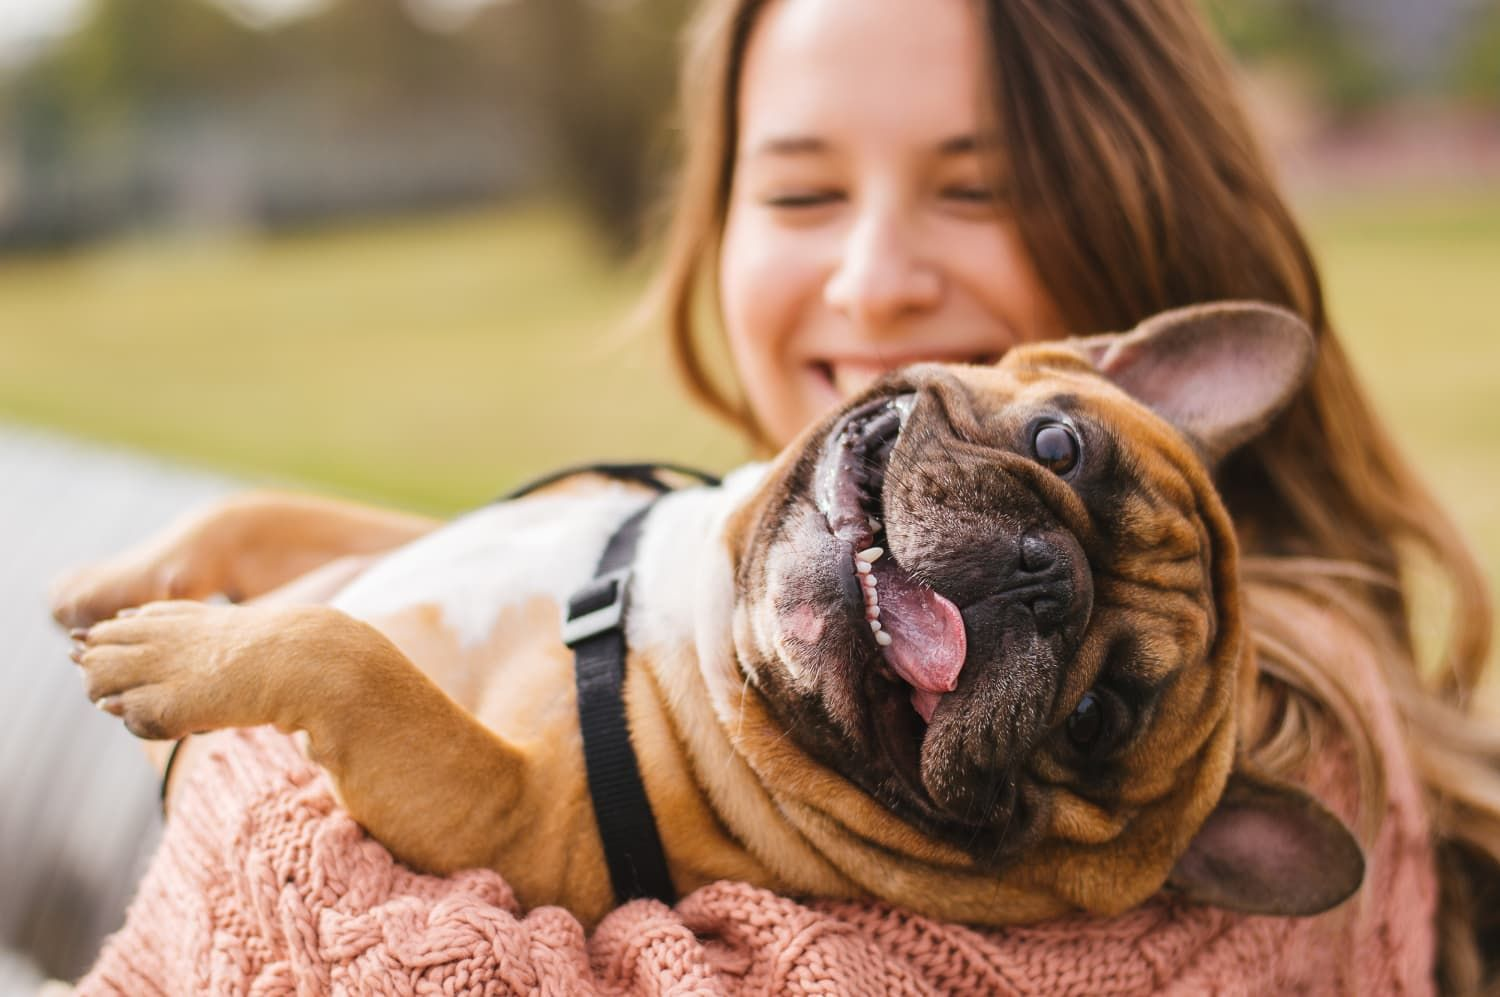 Dog Owners Are Happier Than Cat Owners, According to a New